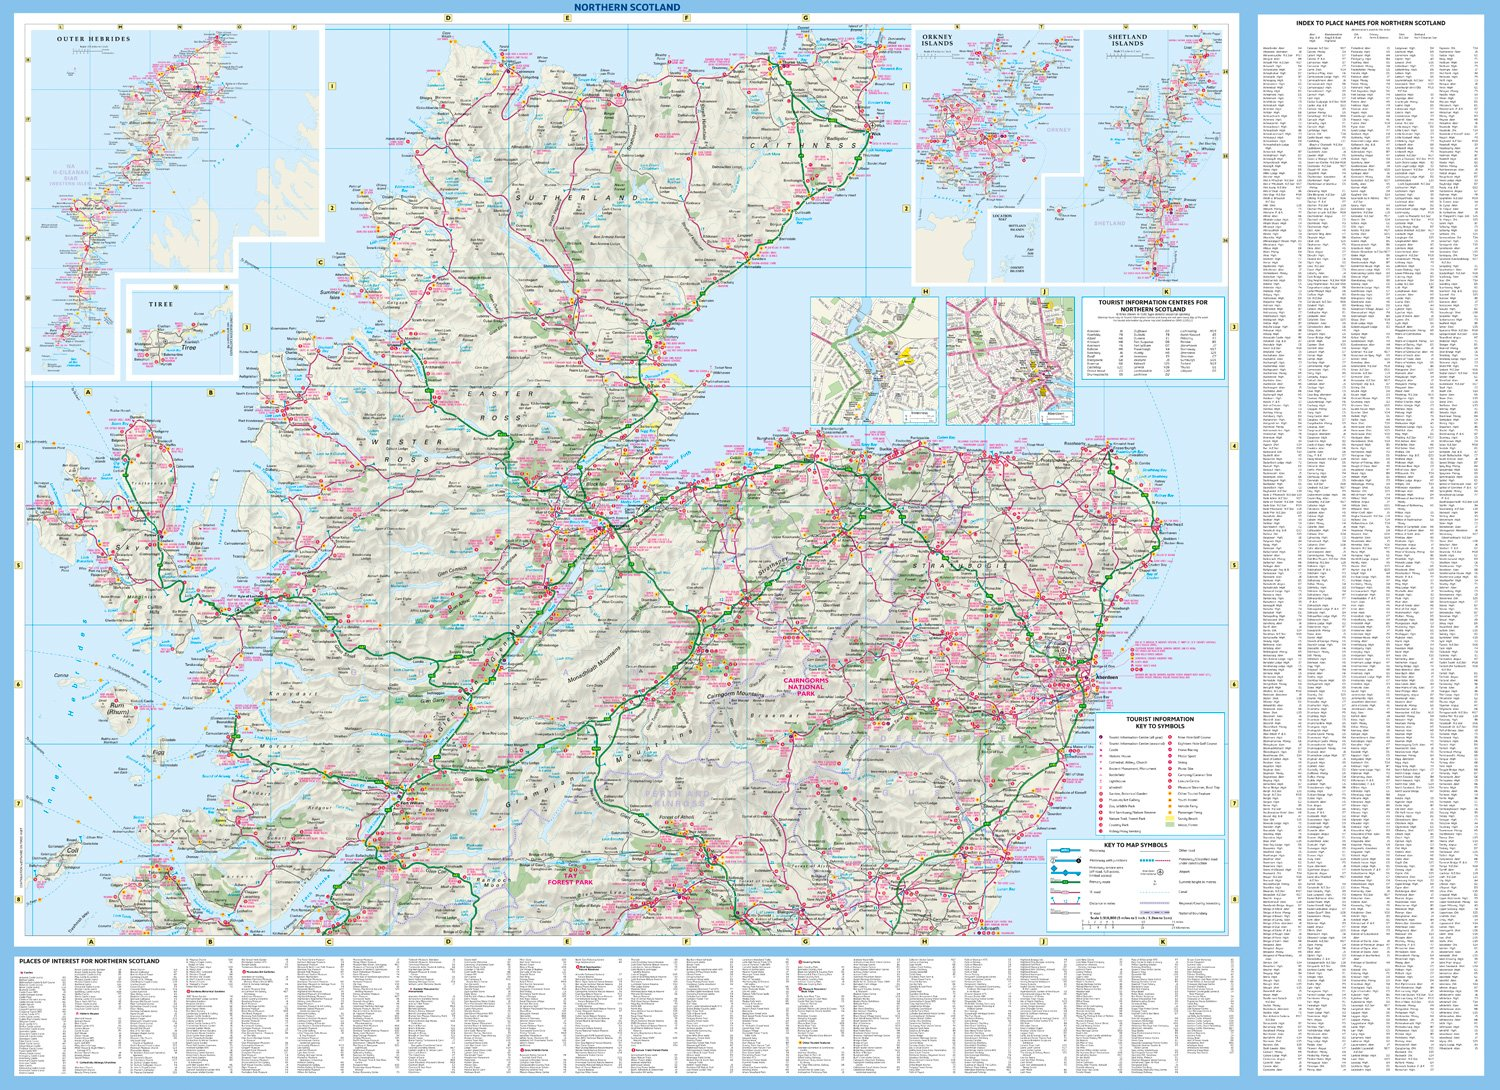 Scotland Touring Map: Amazon.co.uk: Collins Maps: 9780008158521: Books